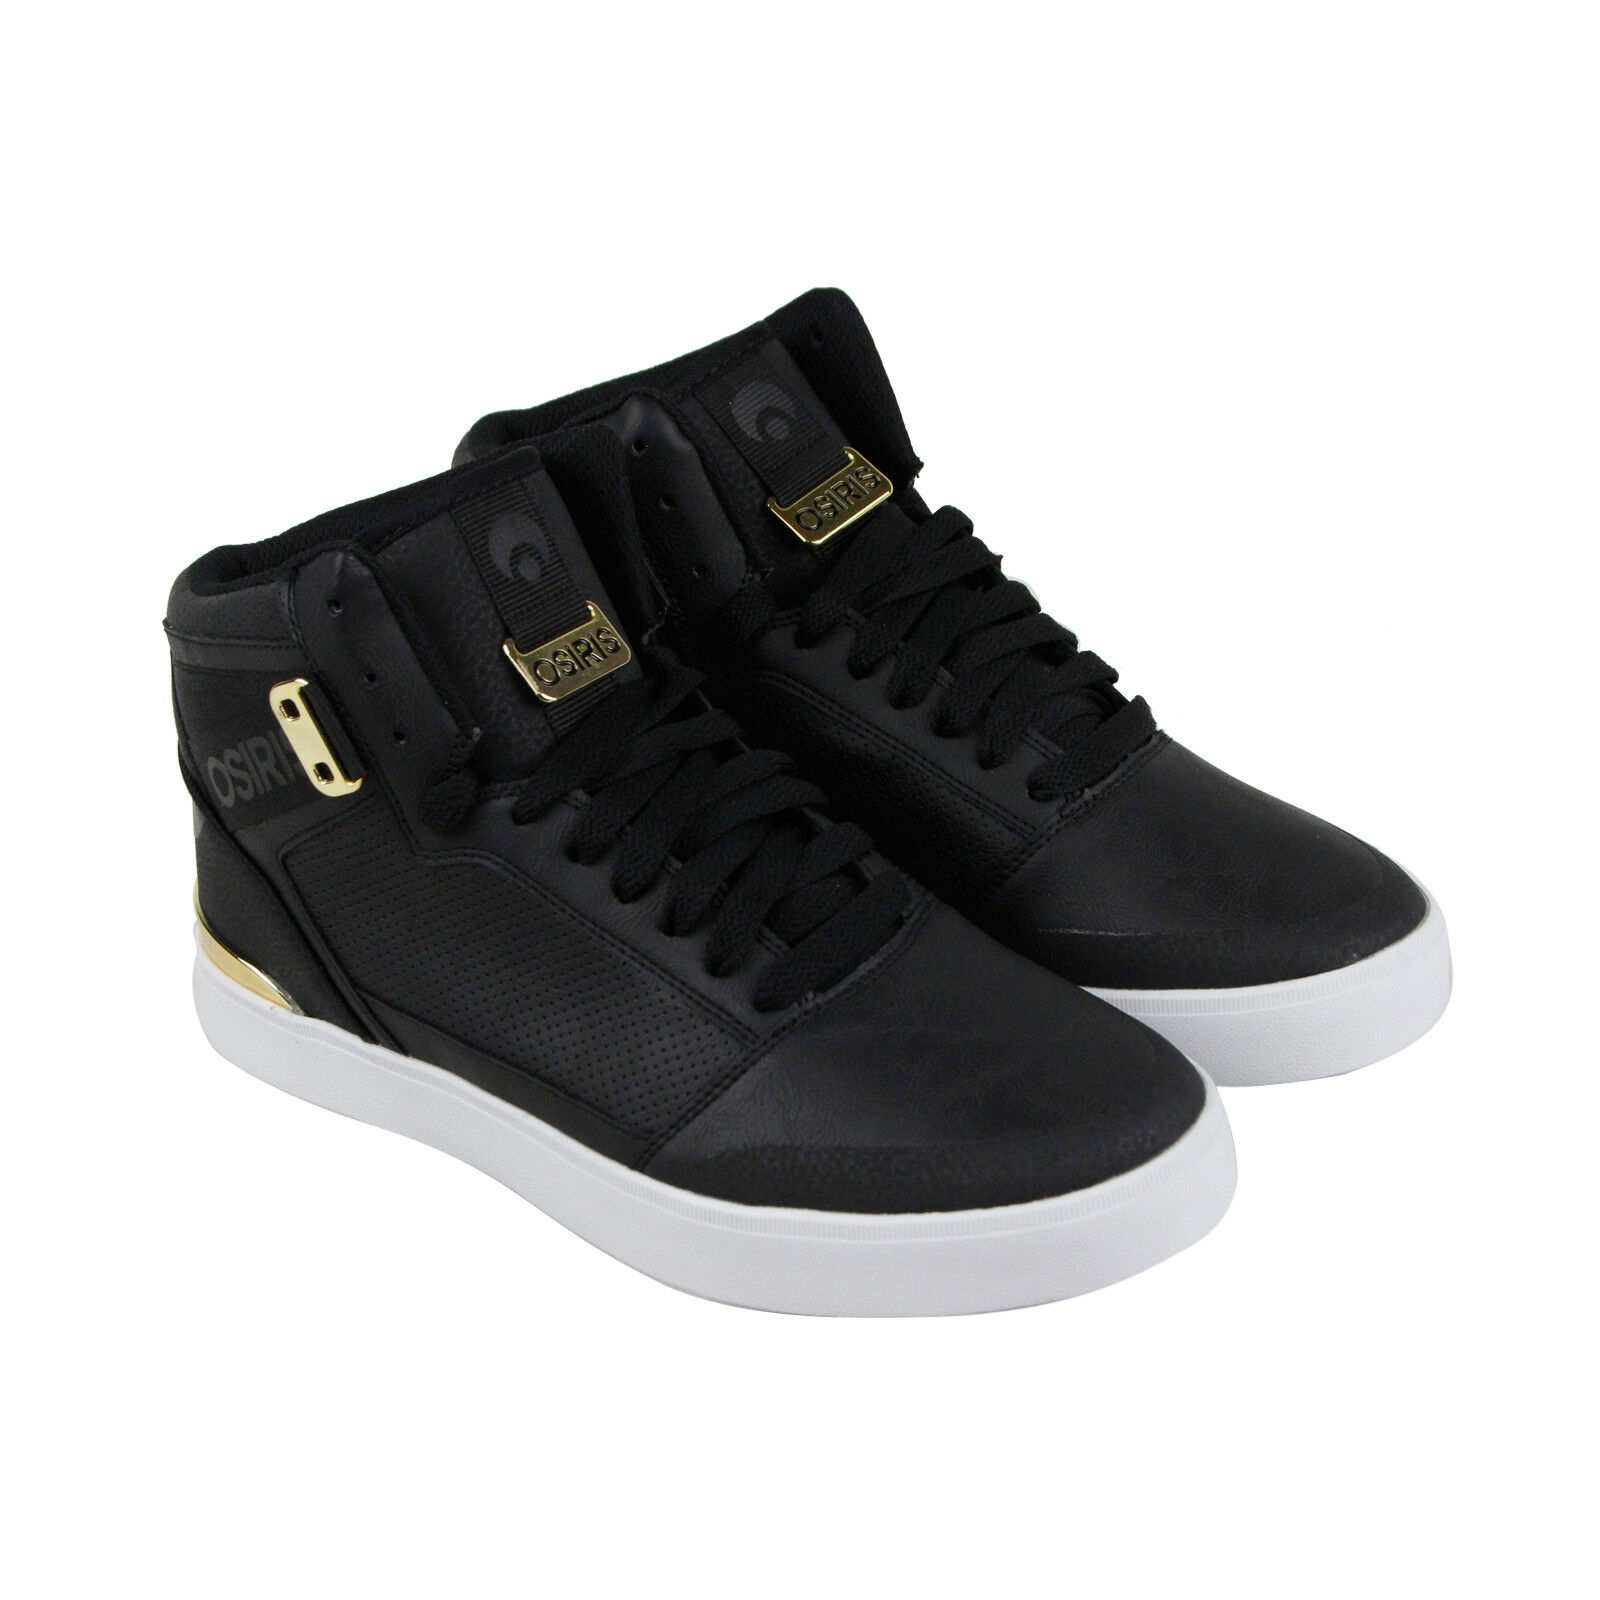 Osiris Cultur Homme Noir Leather Sneakers Lace Up Skate Chaussures